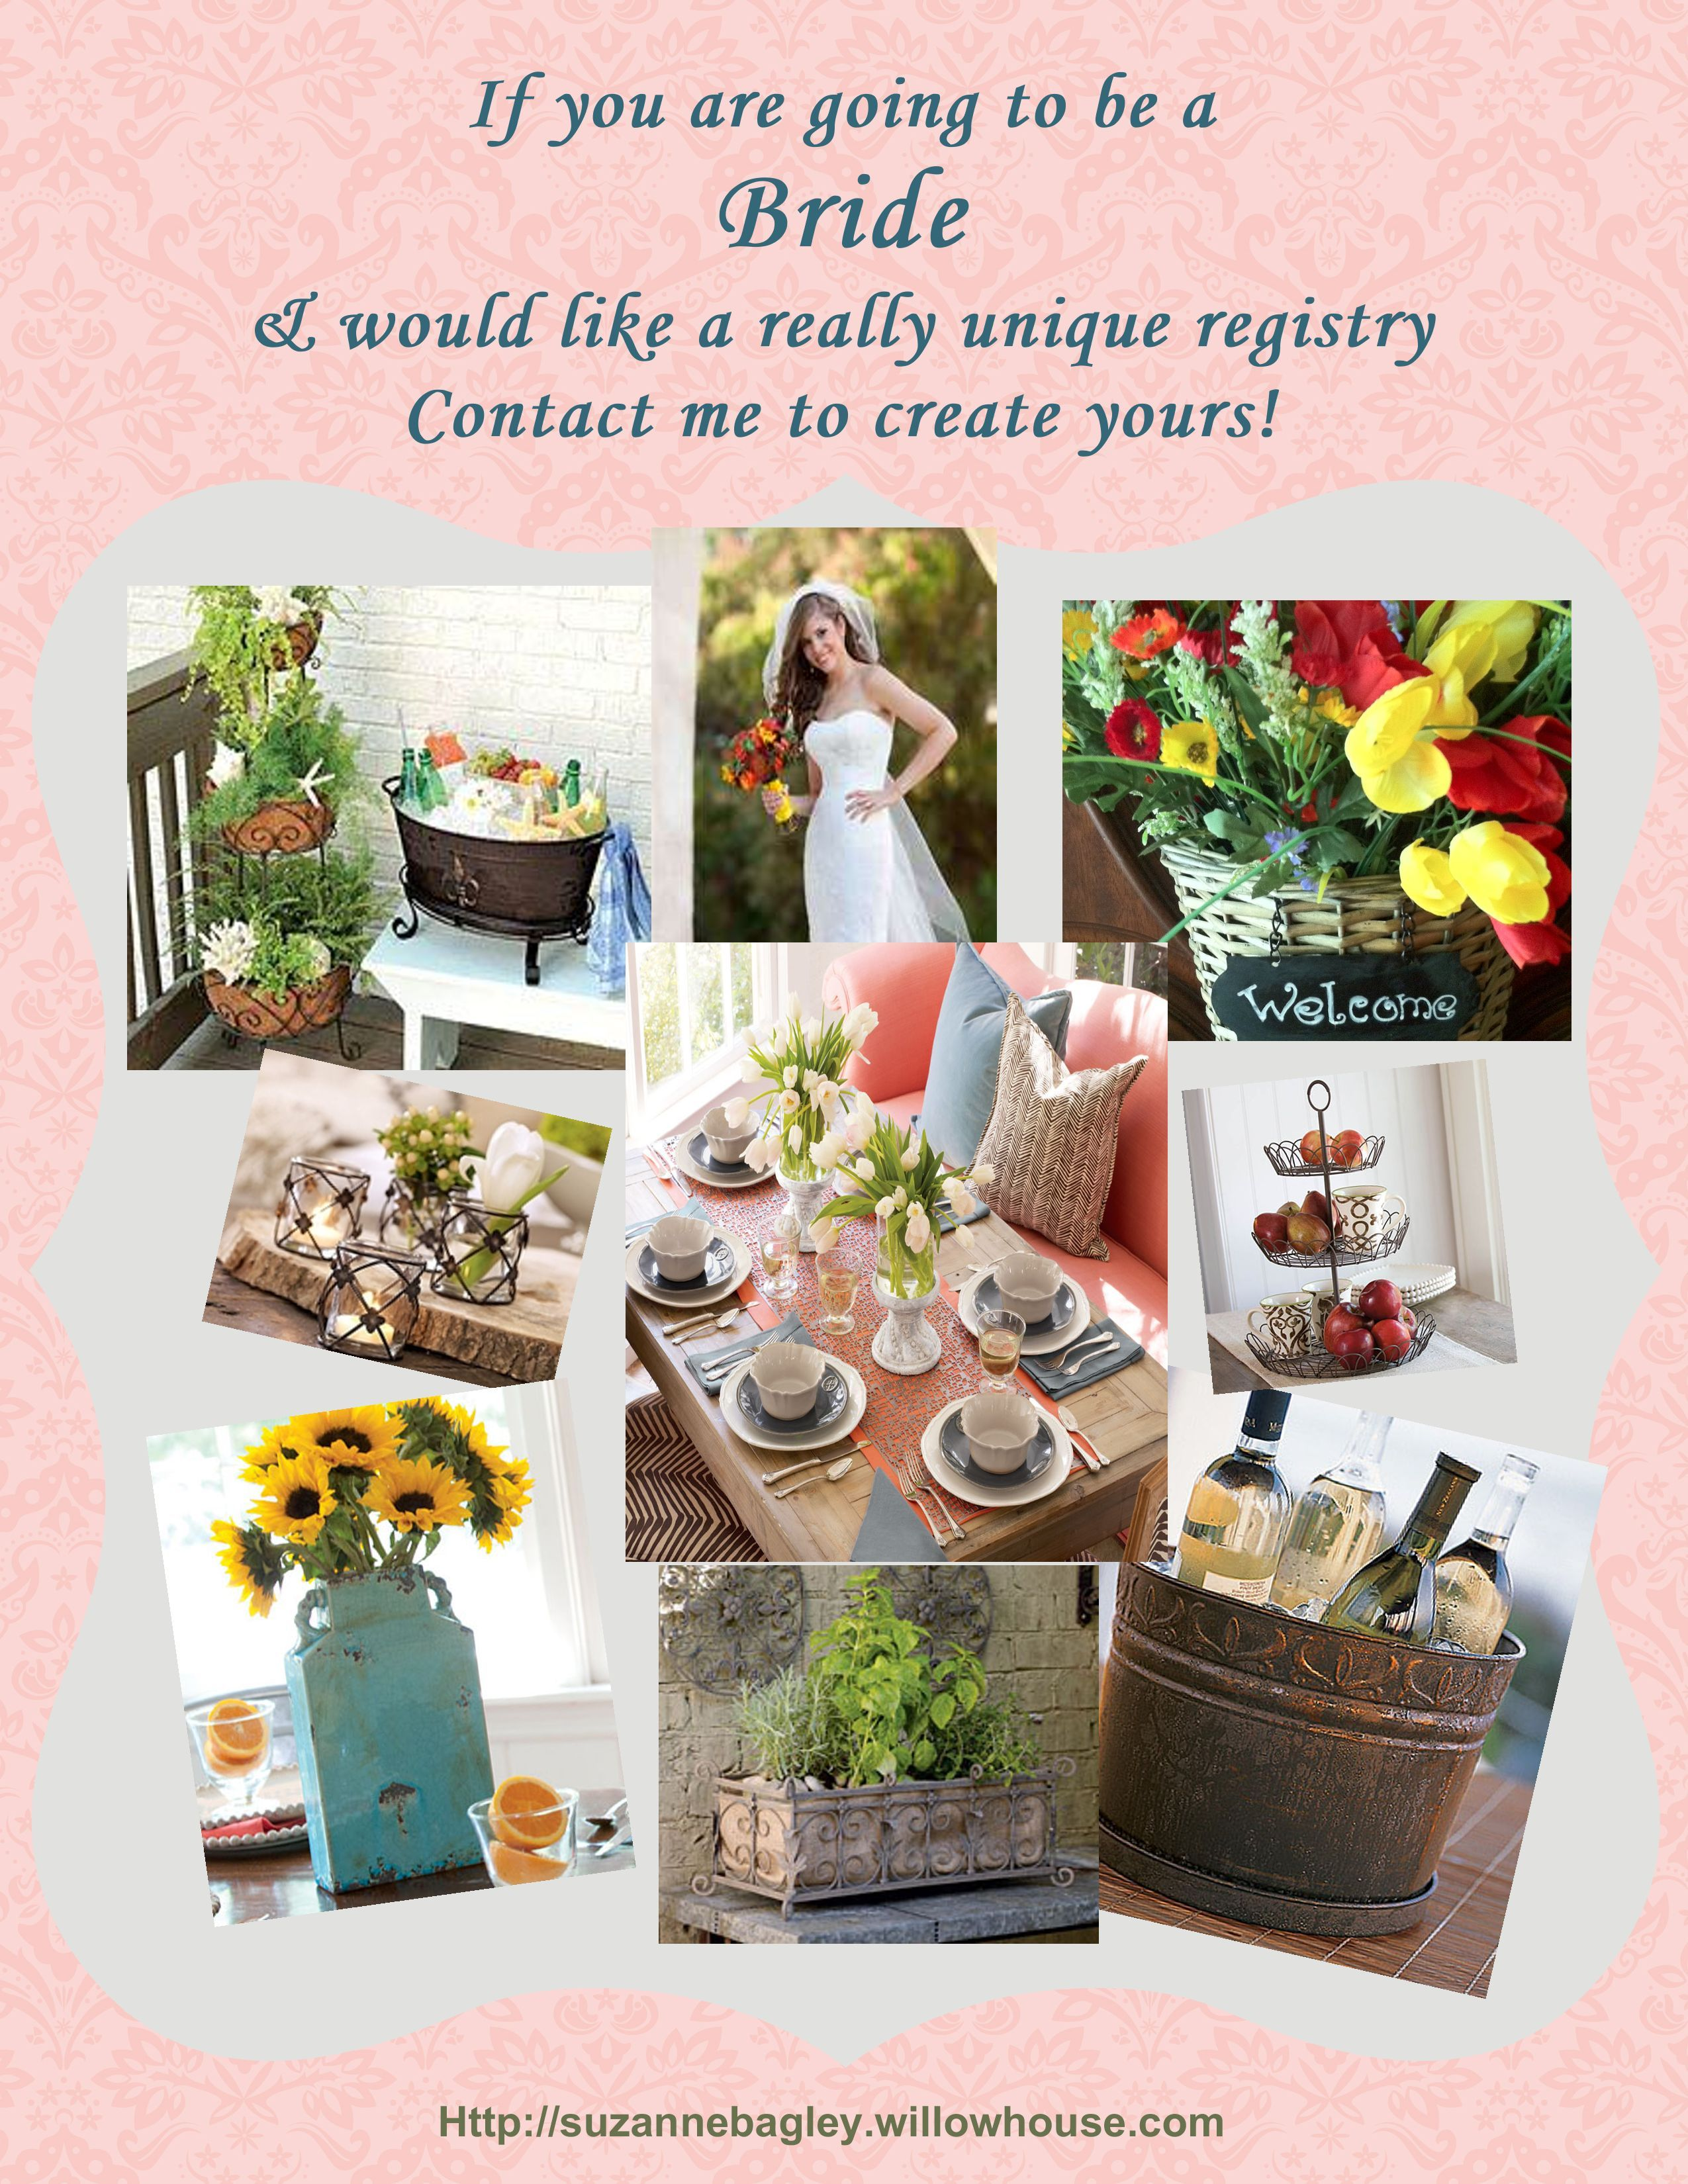 Get The Willow House Products You Love For Shower And Wedding